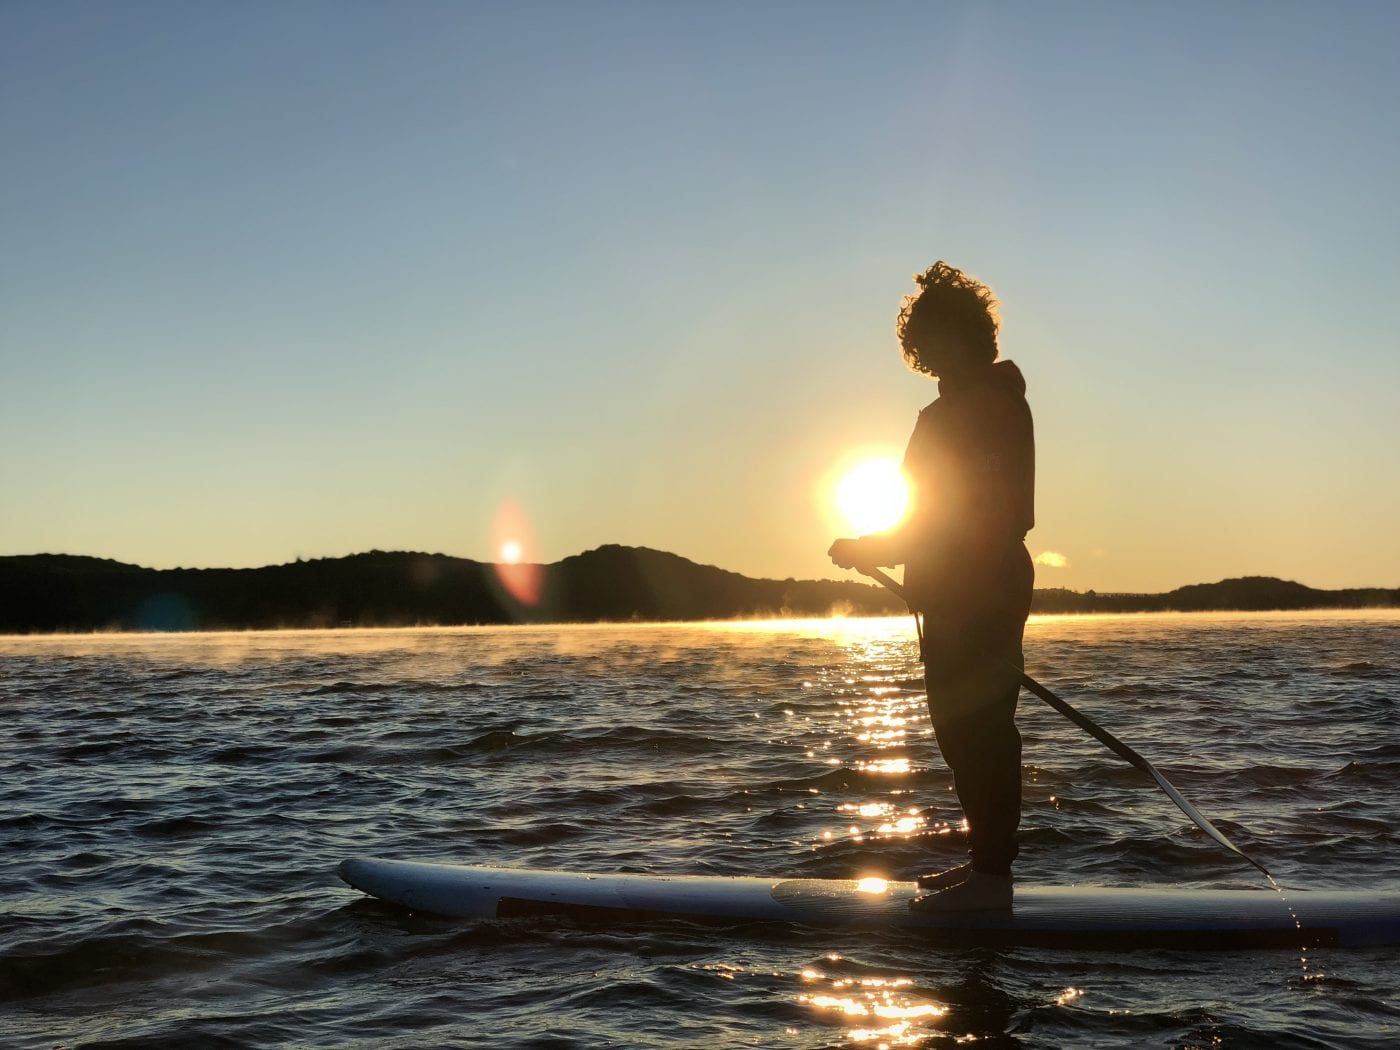 Stand up paddleboarding in the lake at sunset